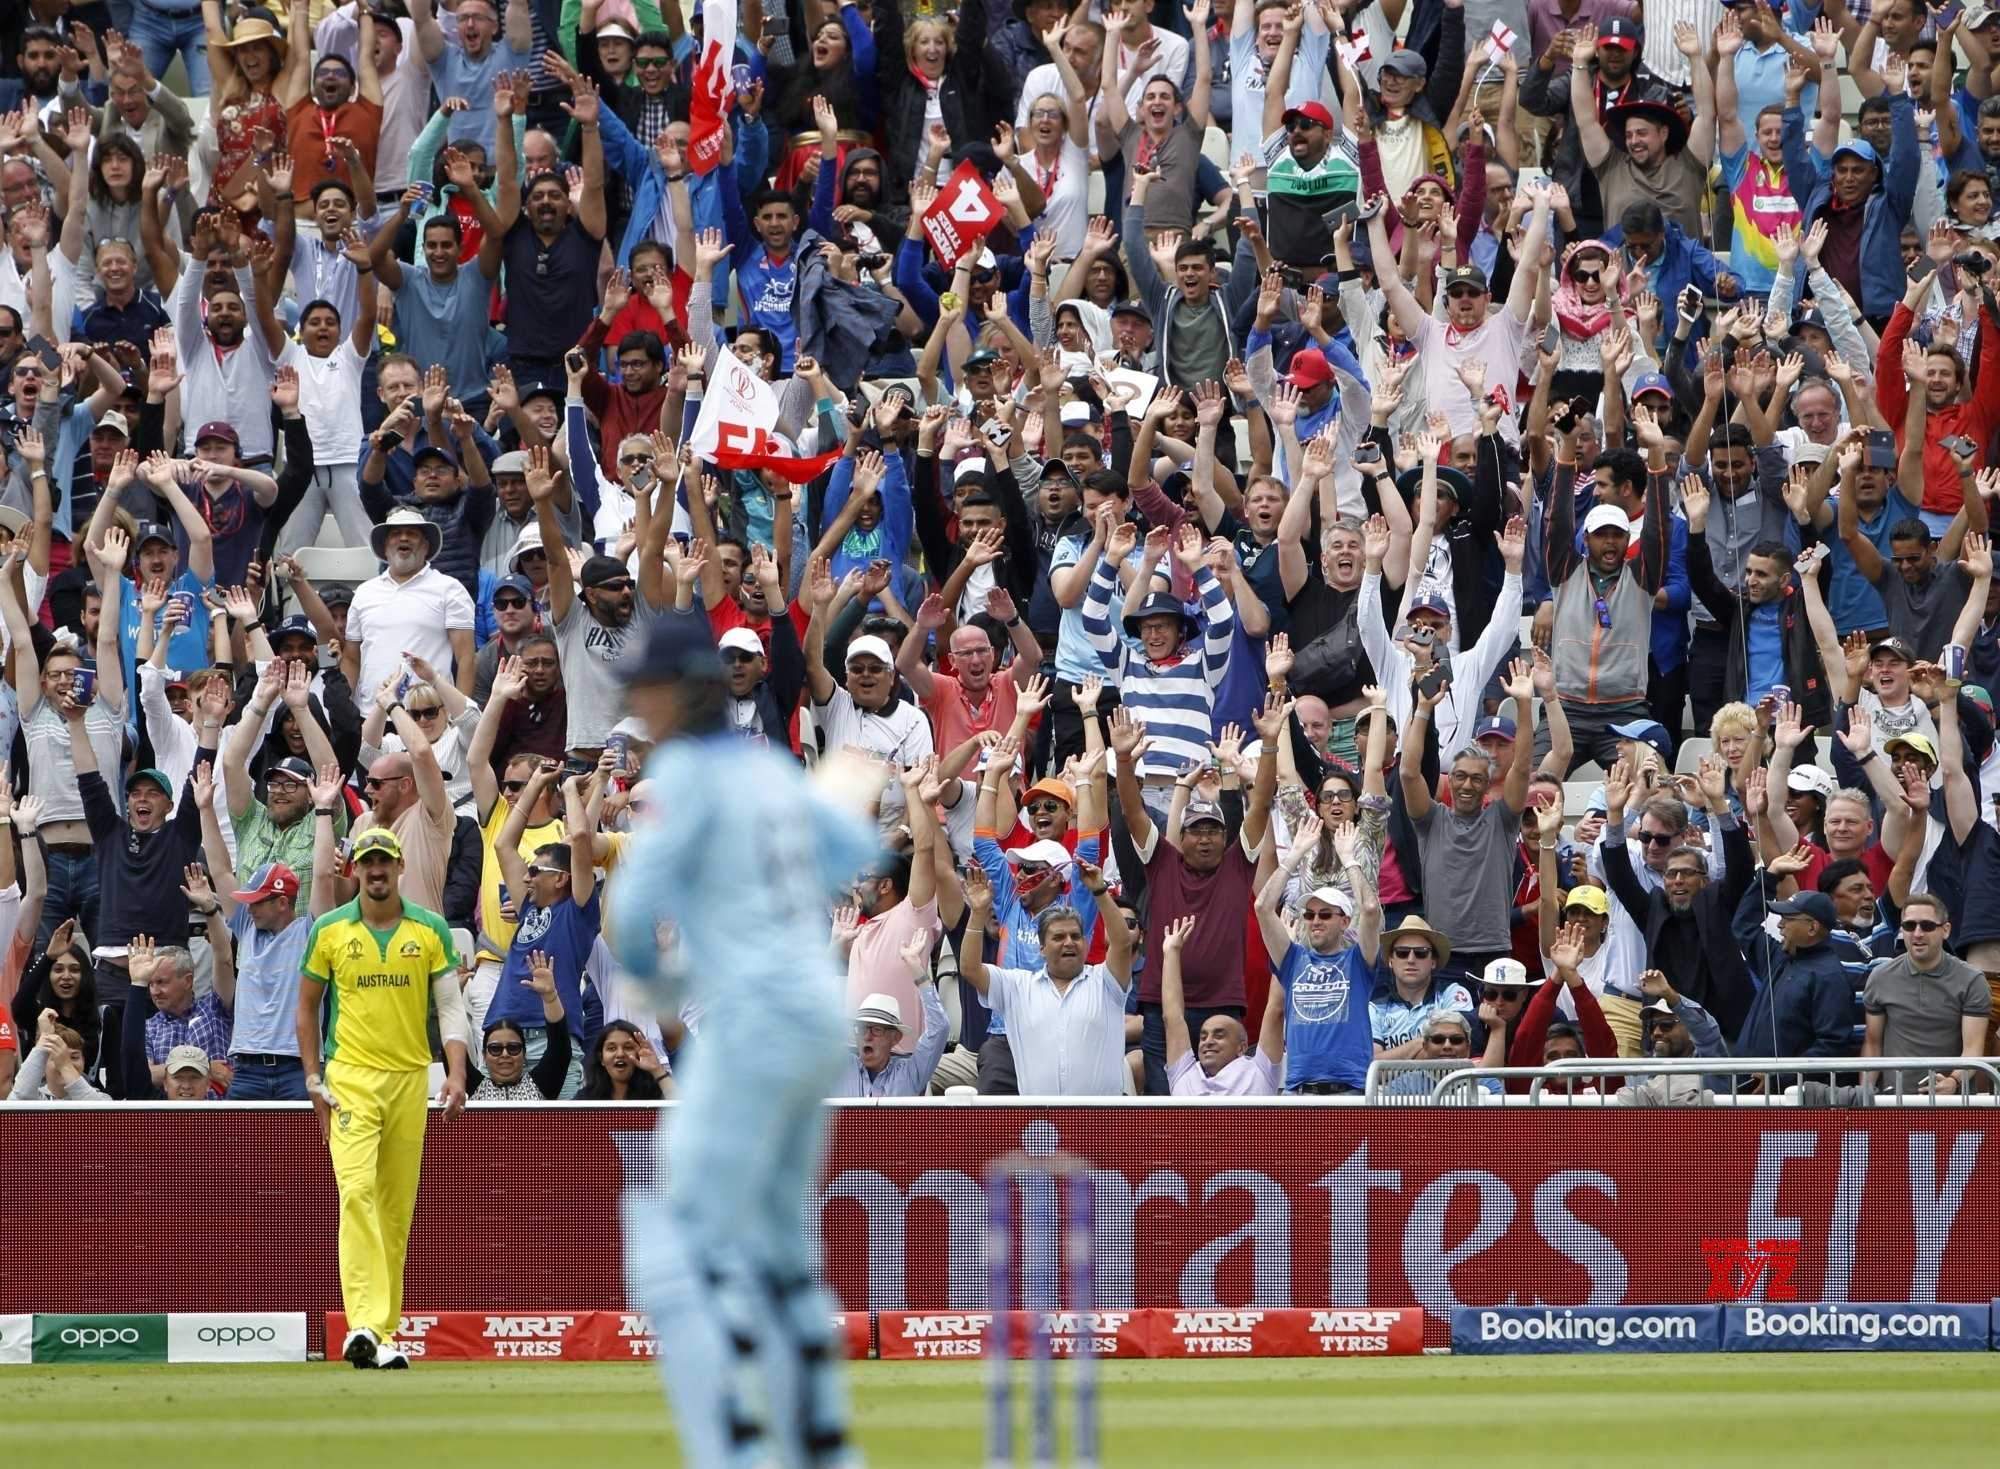 Birmingham (England): 2019 World Cup - 2nd Semi - final - Australia Vs England (Batch - 42) #Gallery